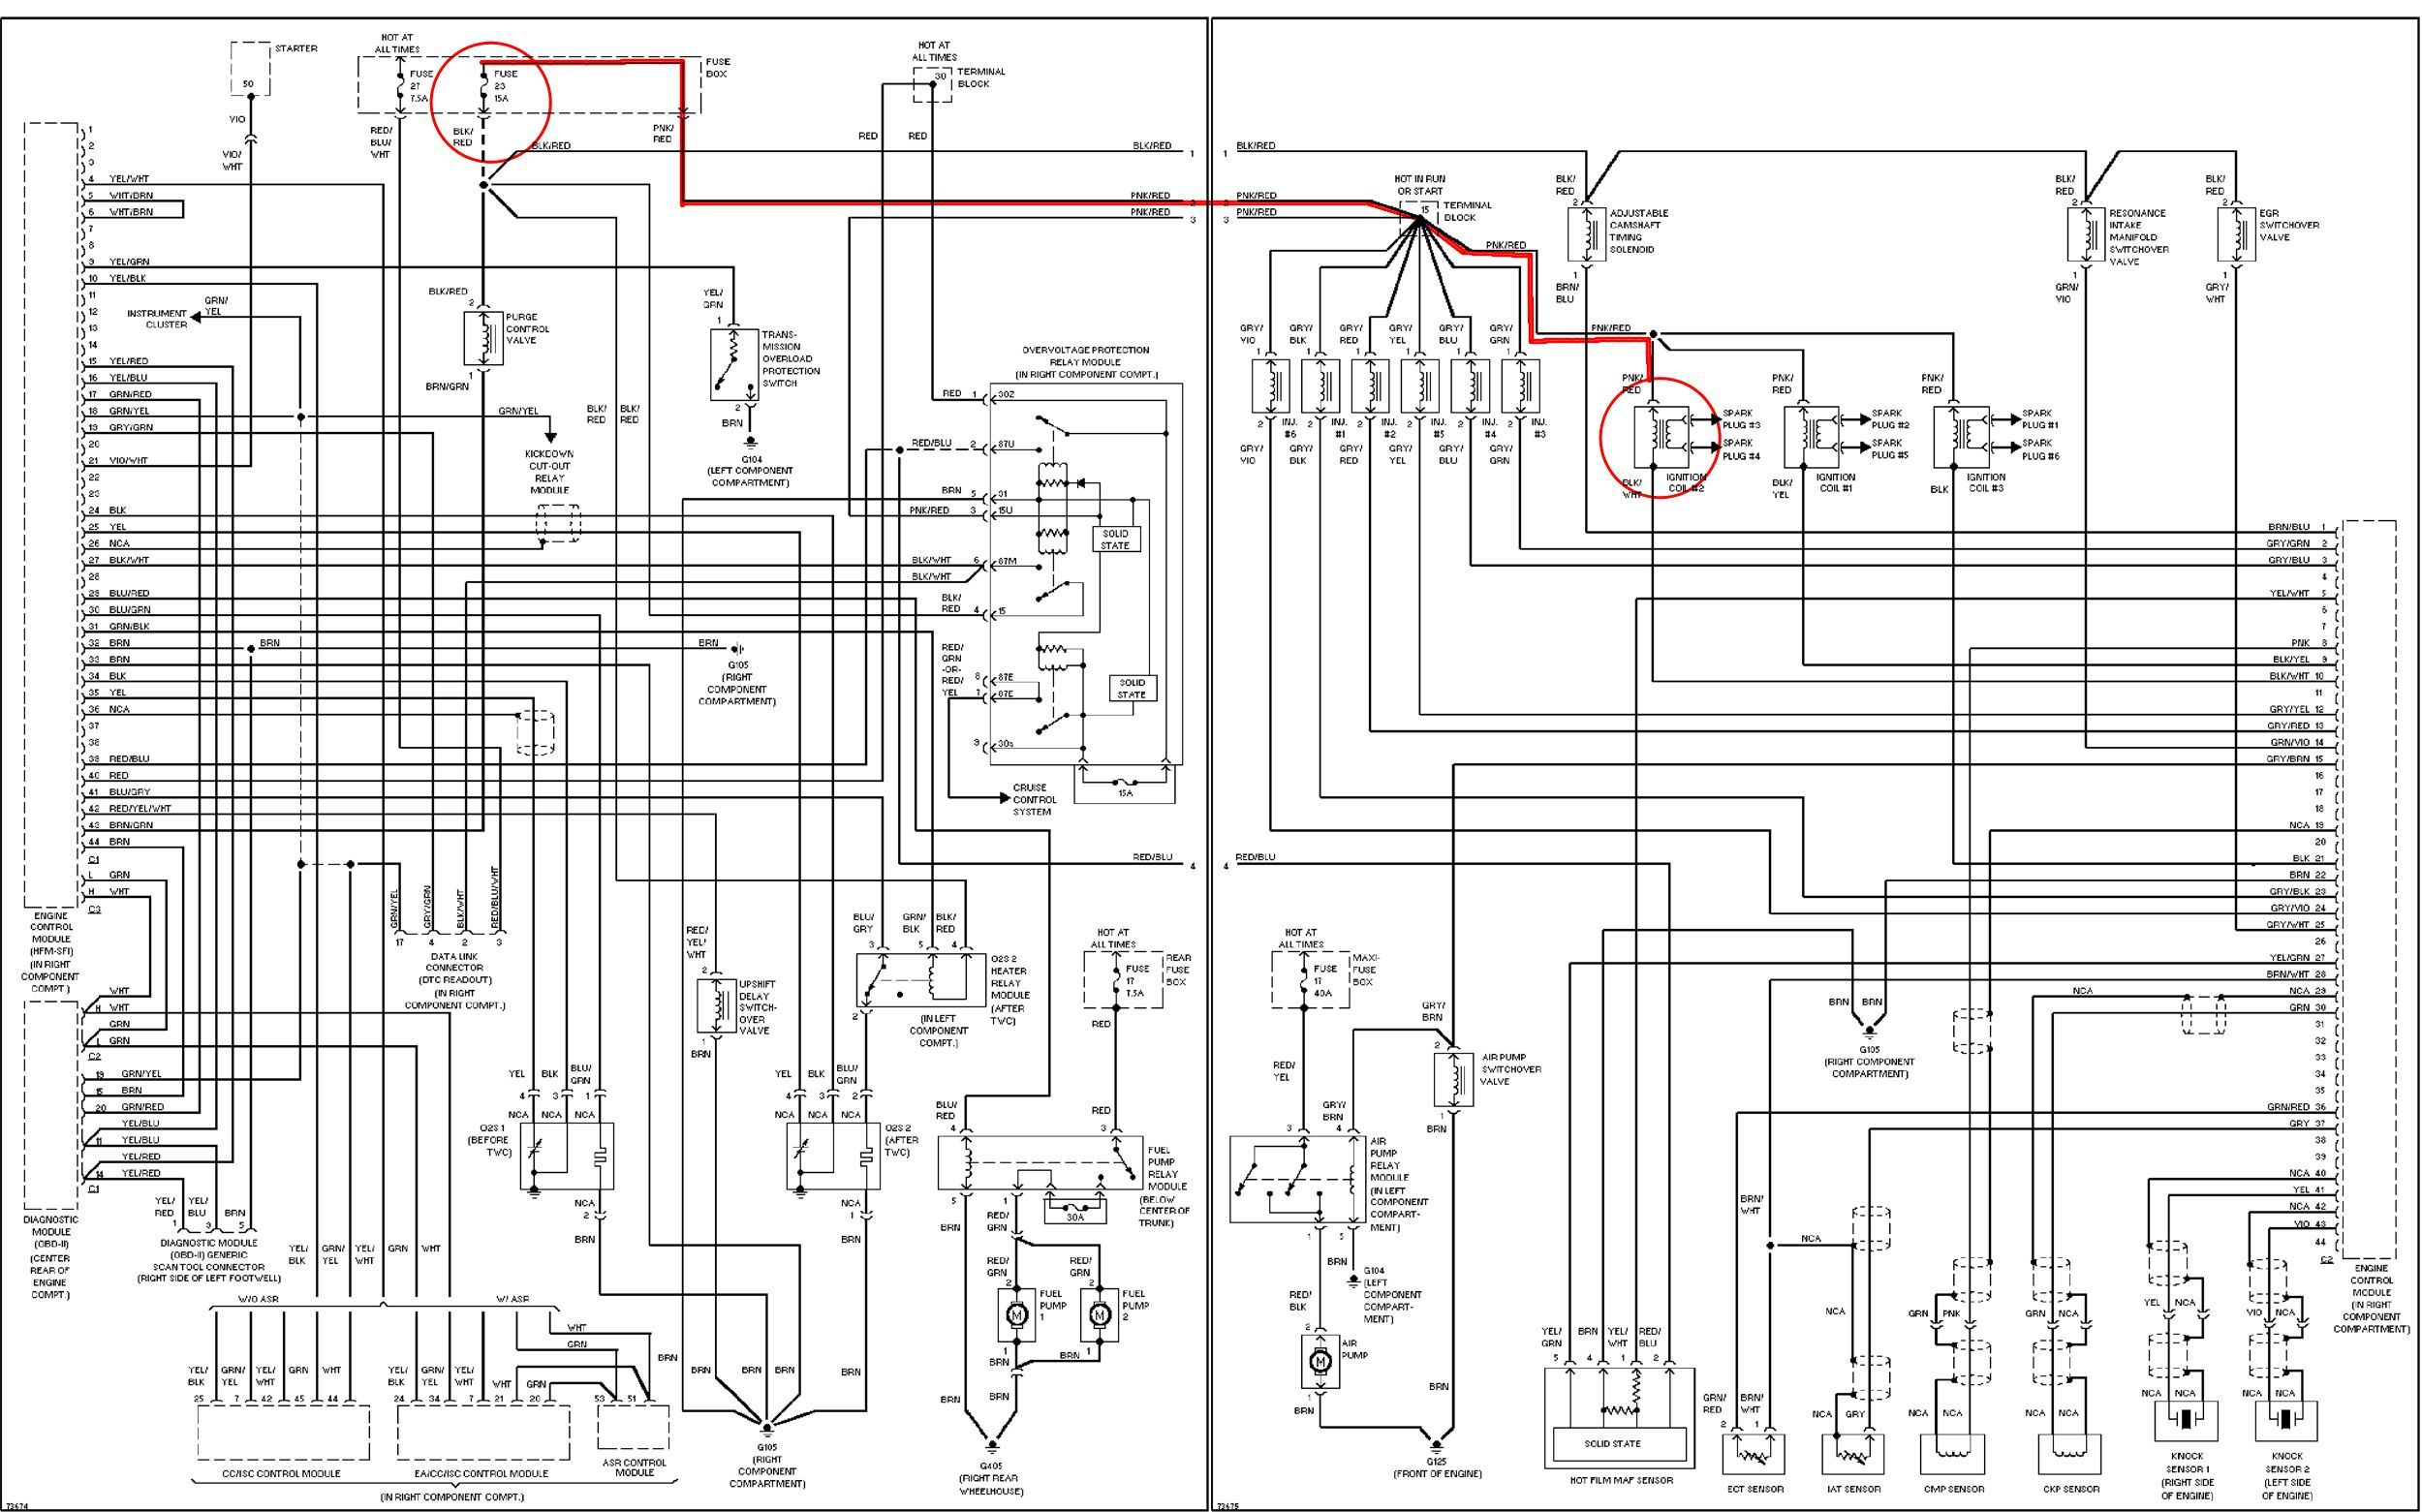 medium resolution of k1blm to mercedes benz wiring diagram